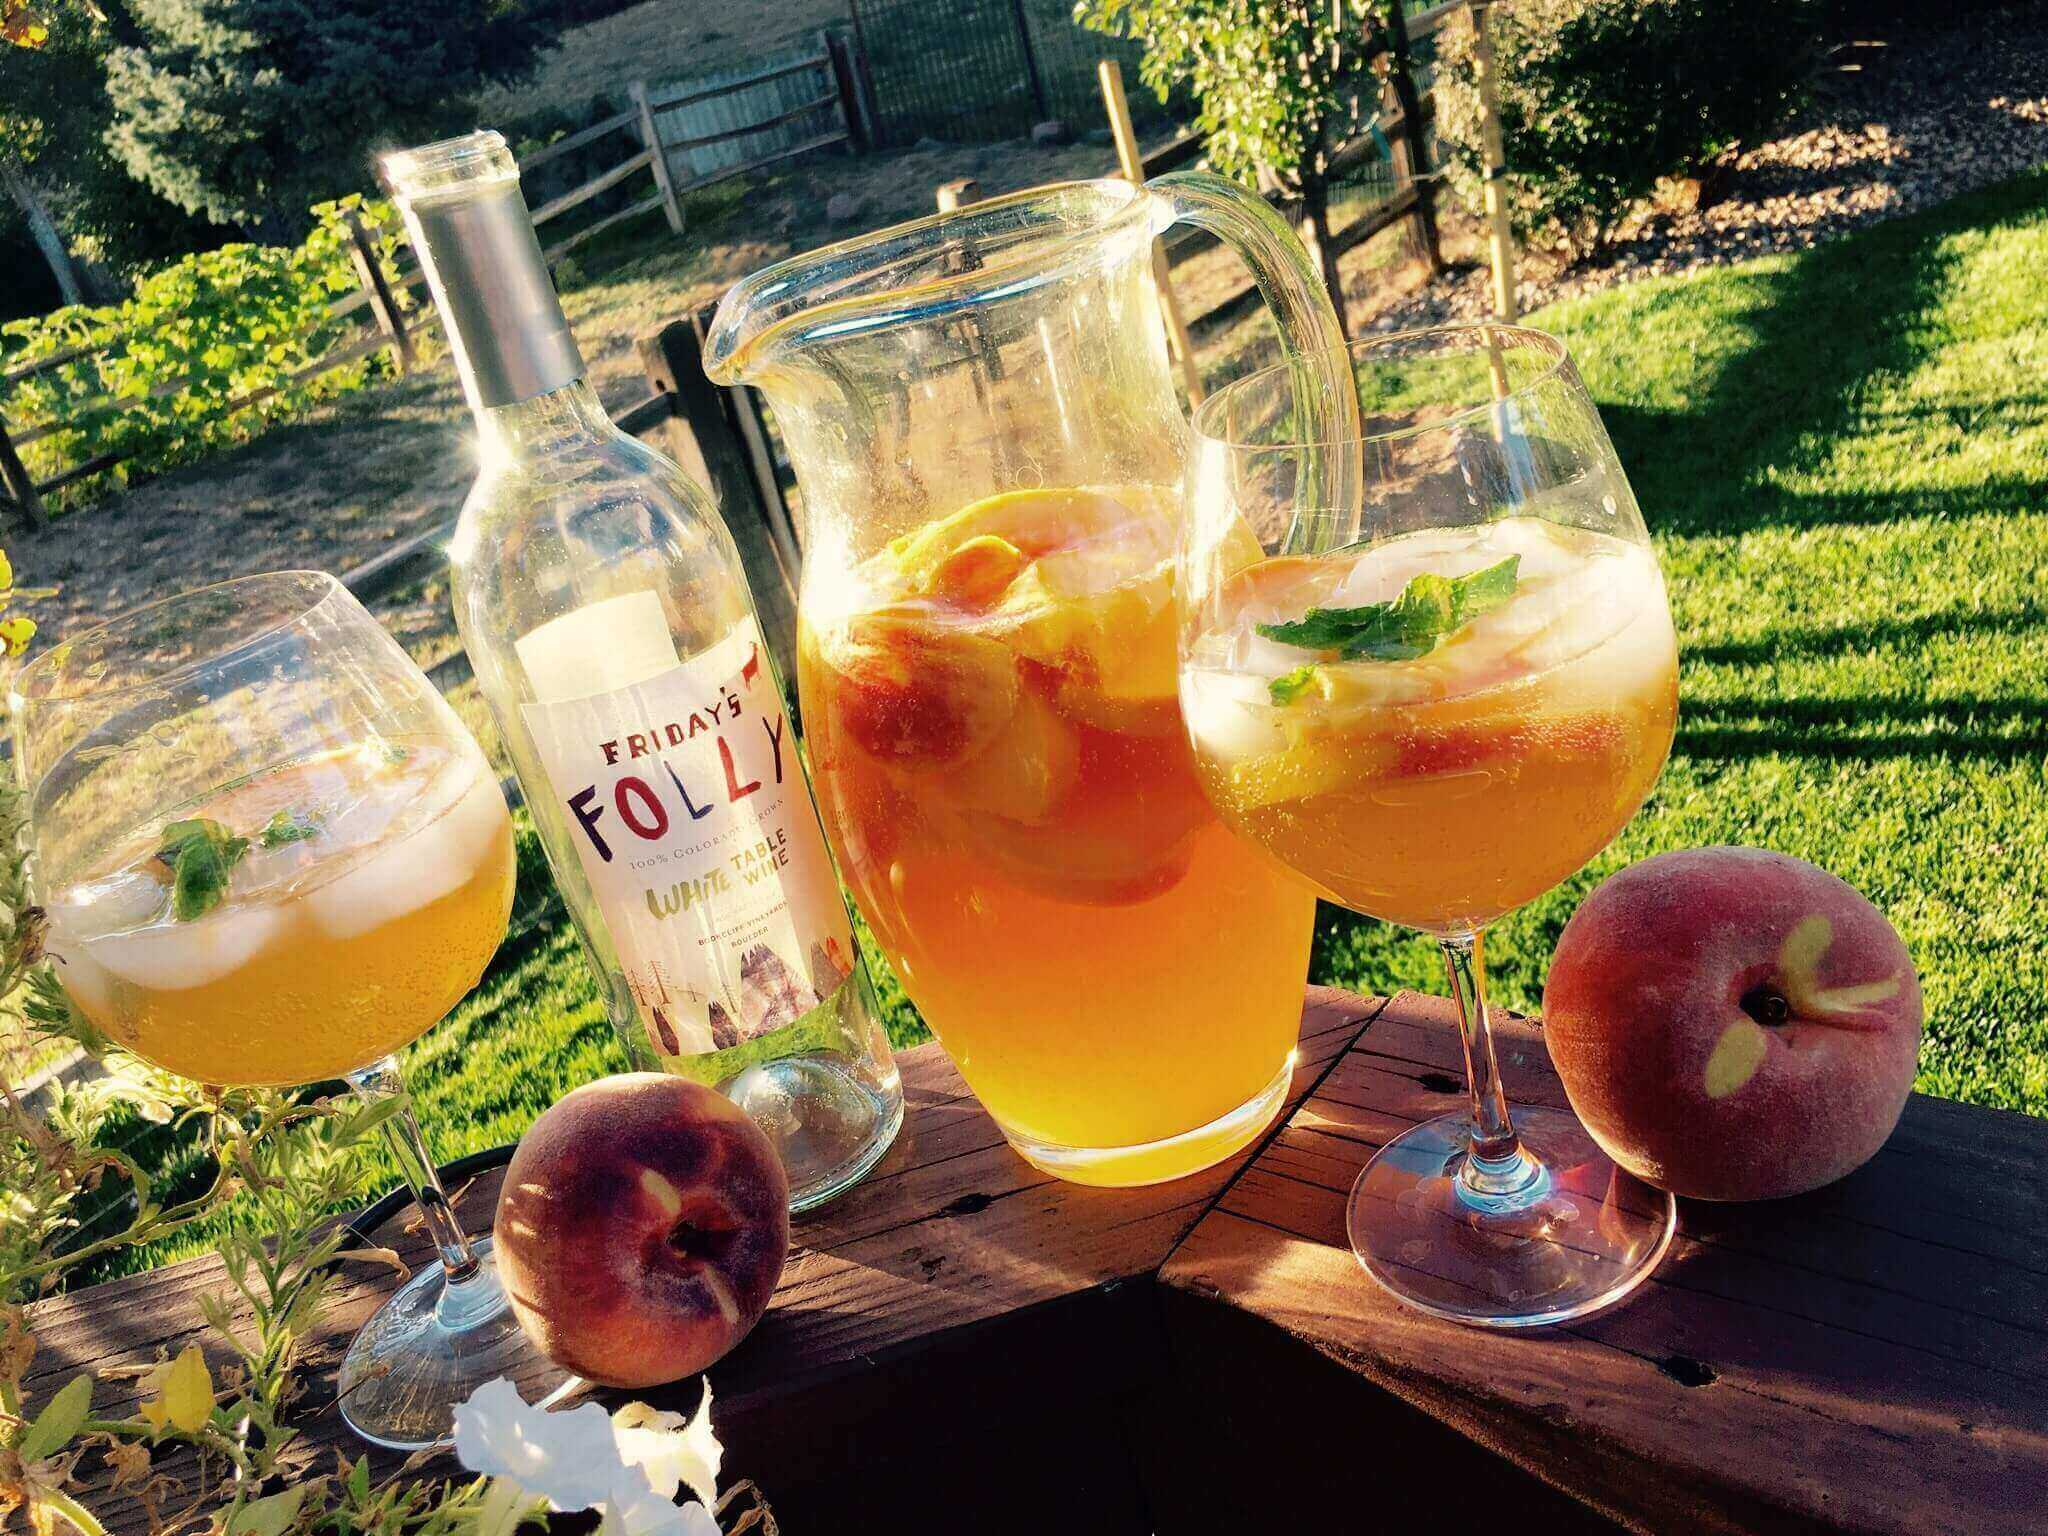 Palisade Peach Sangria, Palisade Peaches and Palisade Sourced White Table Wine